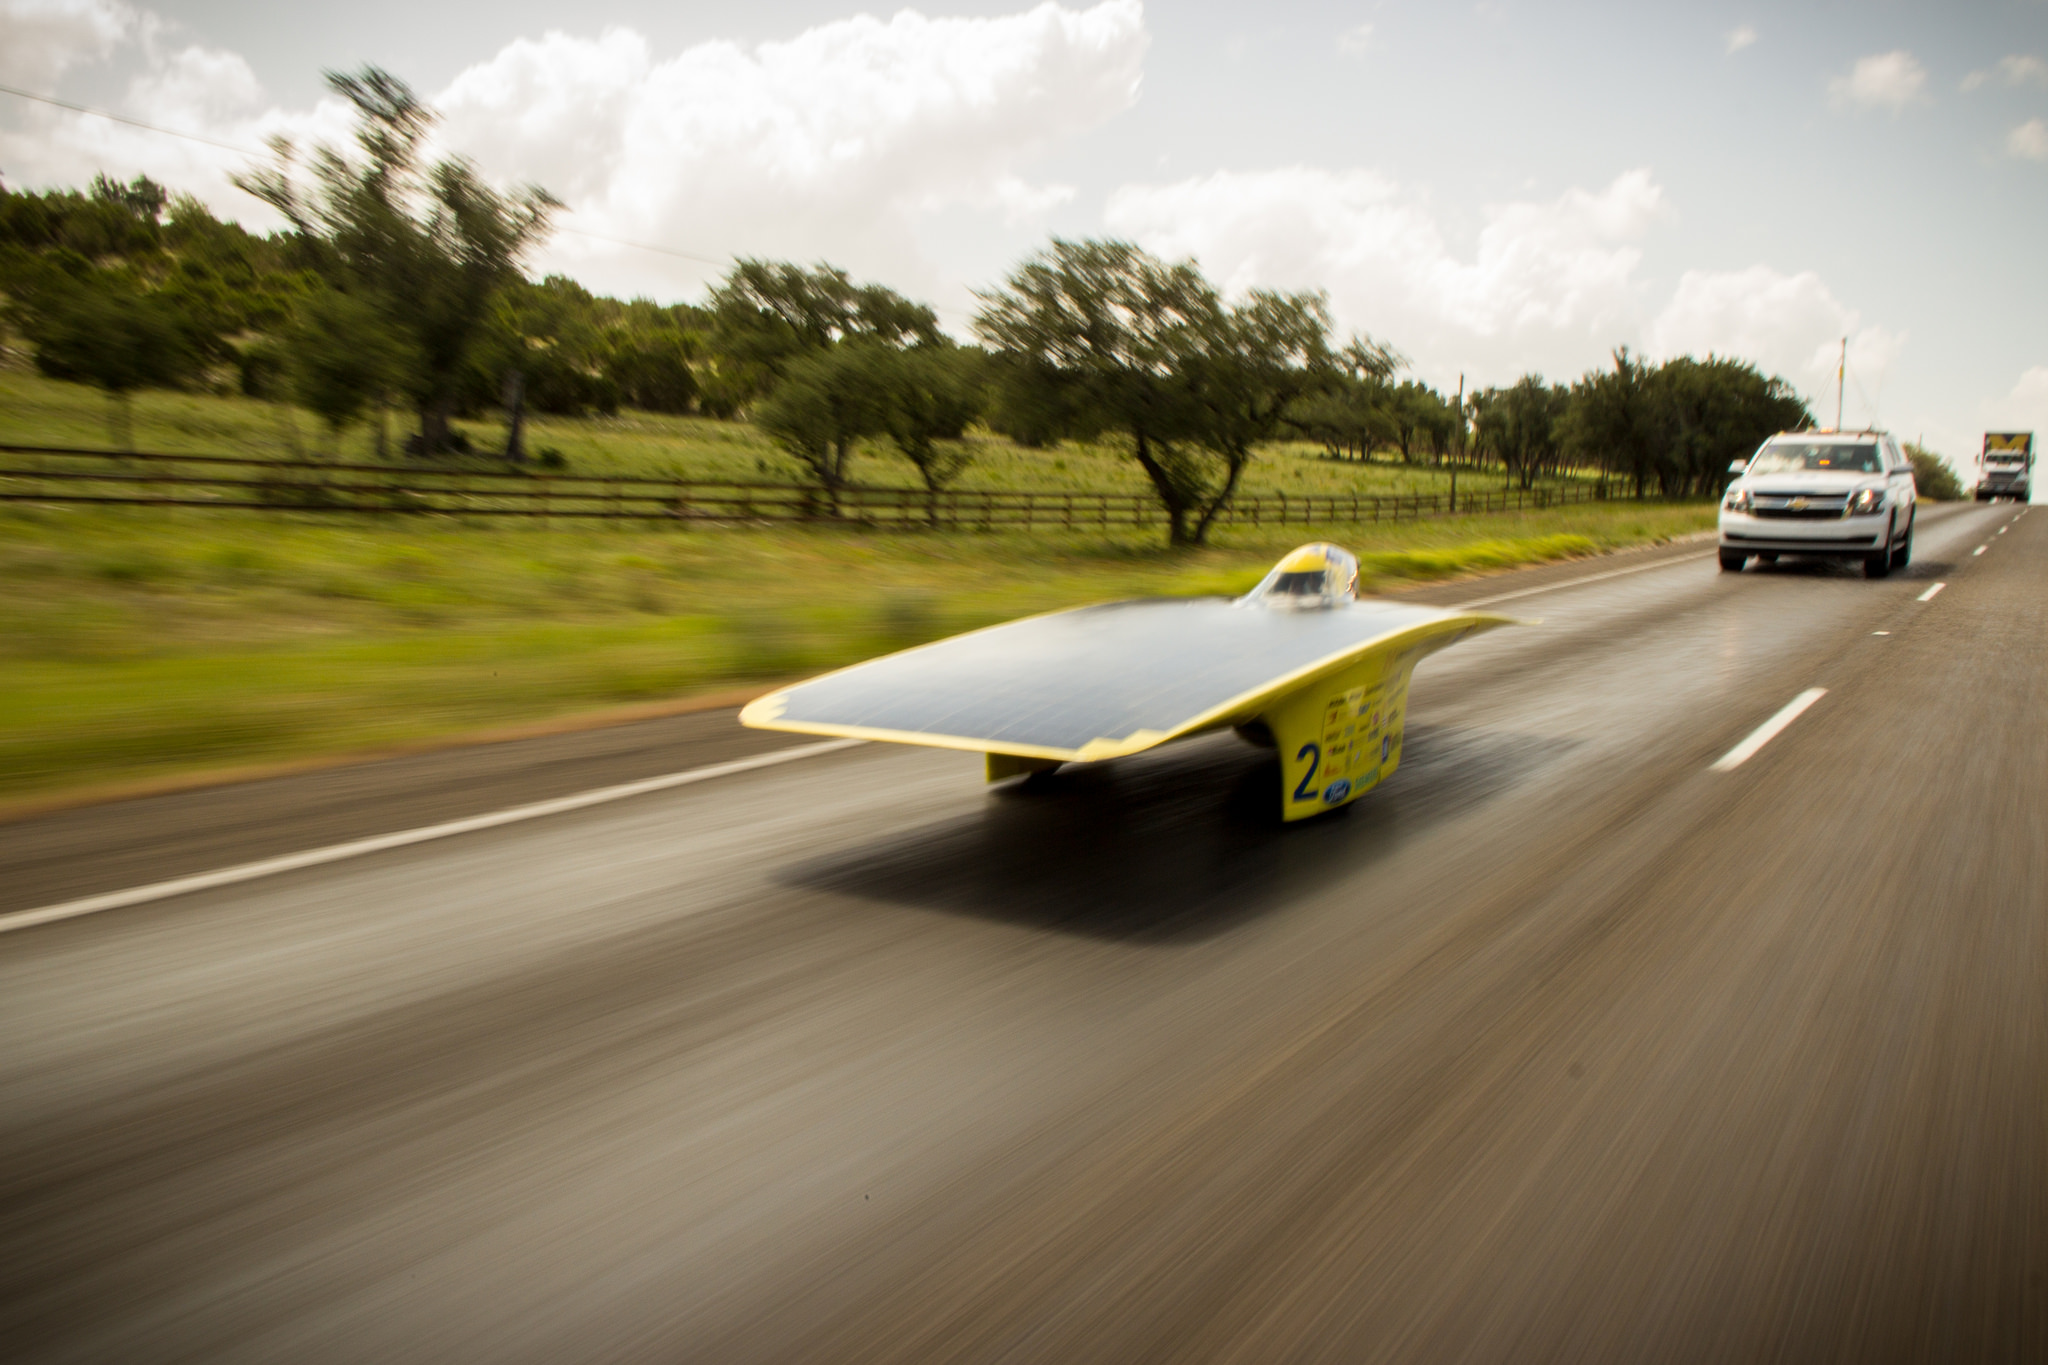 University of Michigan's 2014 solar car, Quantum. Image credit: Darren Cheng